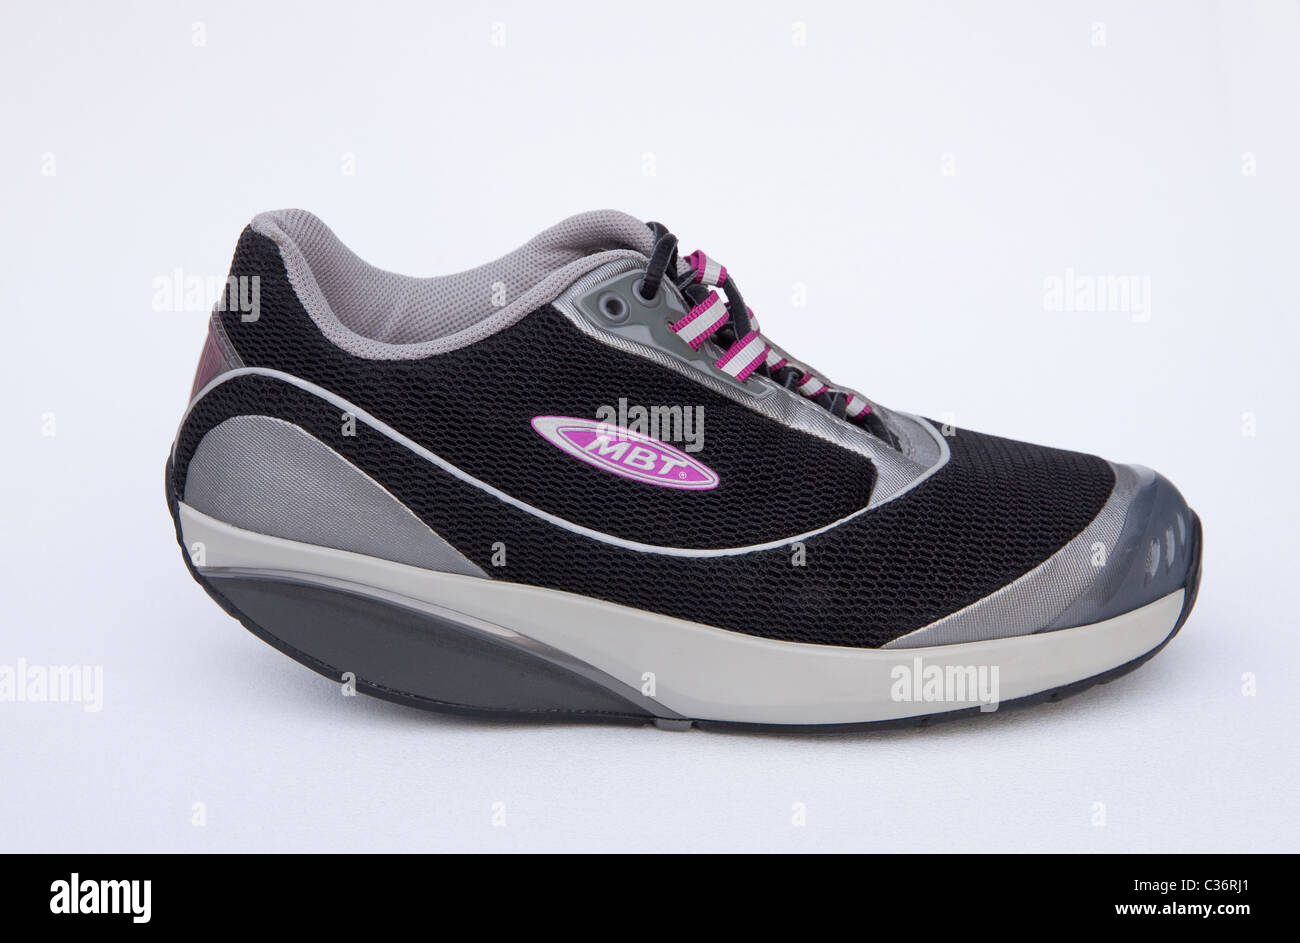 bc42c9692189 MBT (Masai Barefoot Technology) toner sneakers have a rounded sole to  simulate barefoot walking on soft